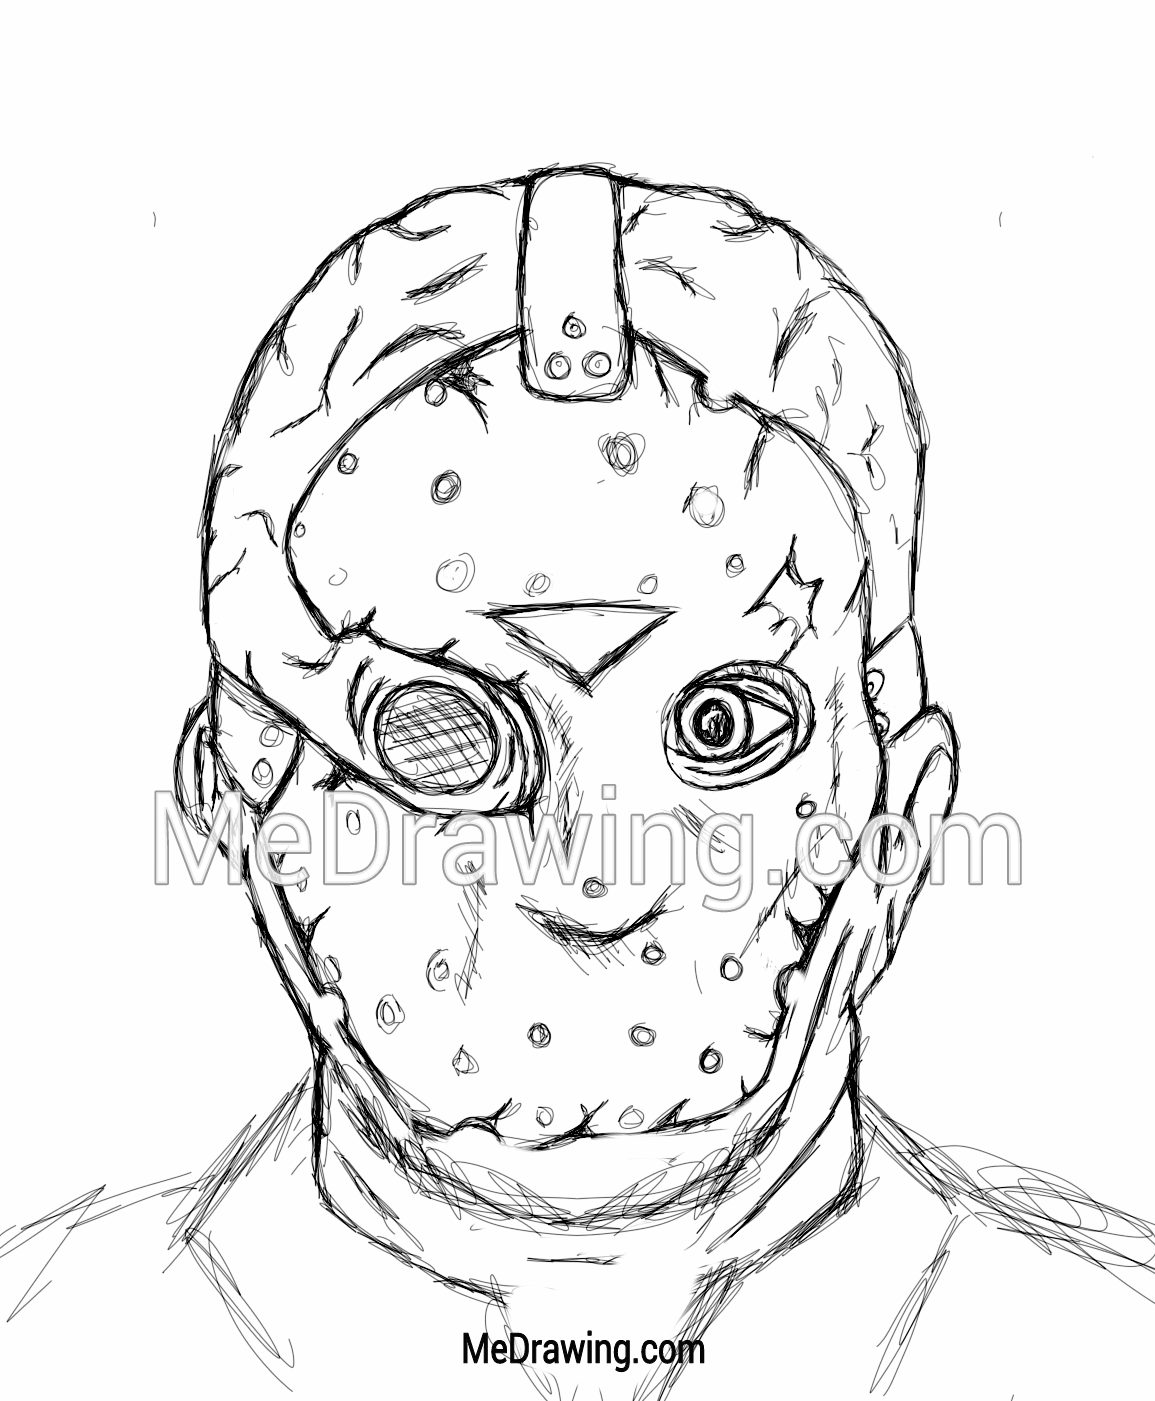 1155x1401 Jason Voorhees Friday The 13th Sketch